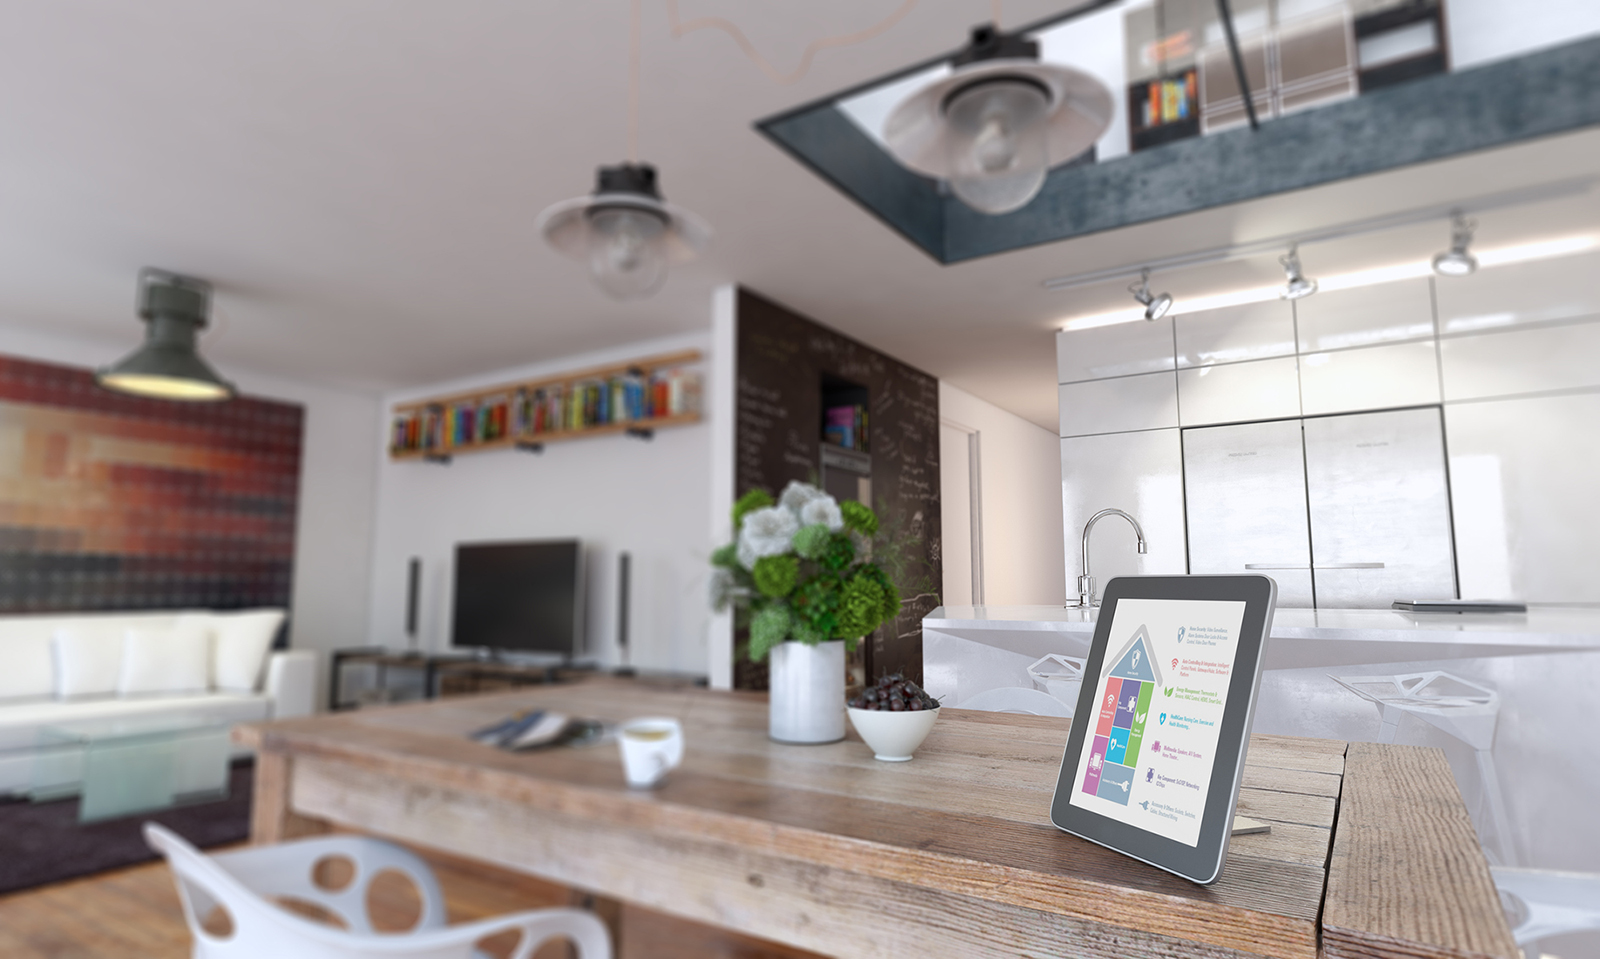 Kitchen area with wooden table featuring a smart home control tablet.